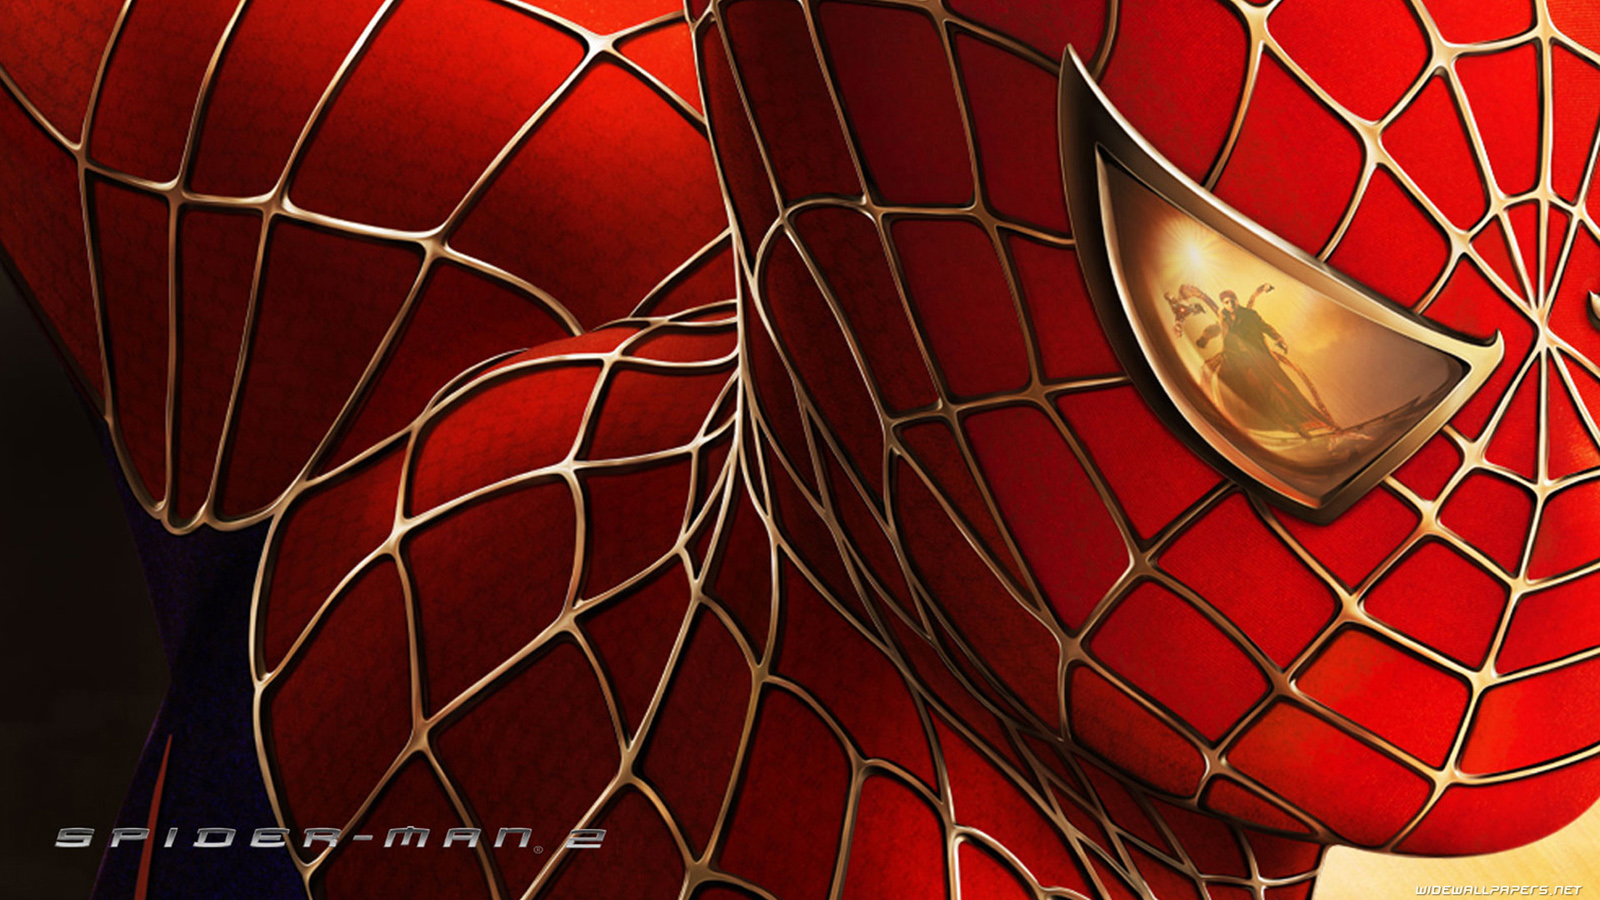 spiderman 2 movie desktop wallpapers hd and wide wallpapers